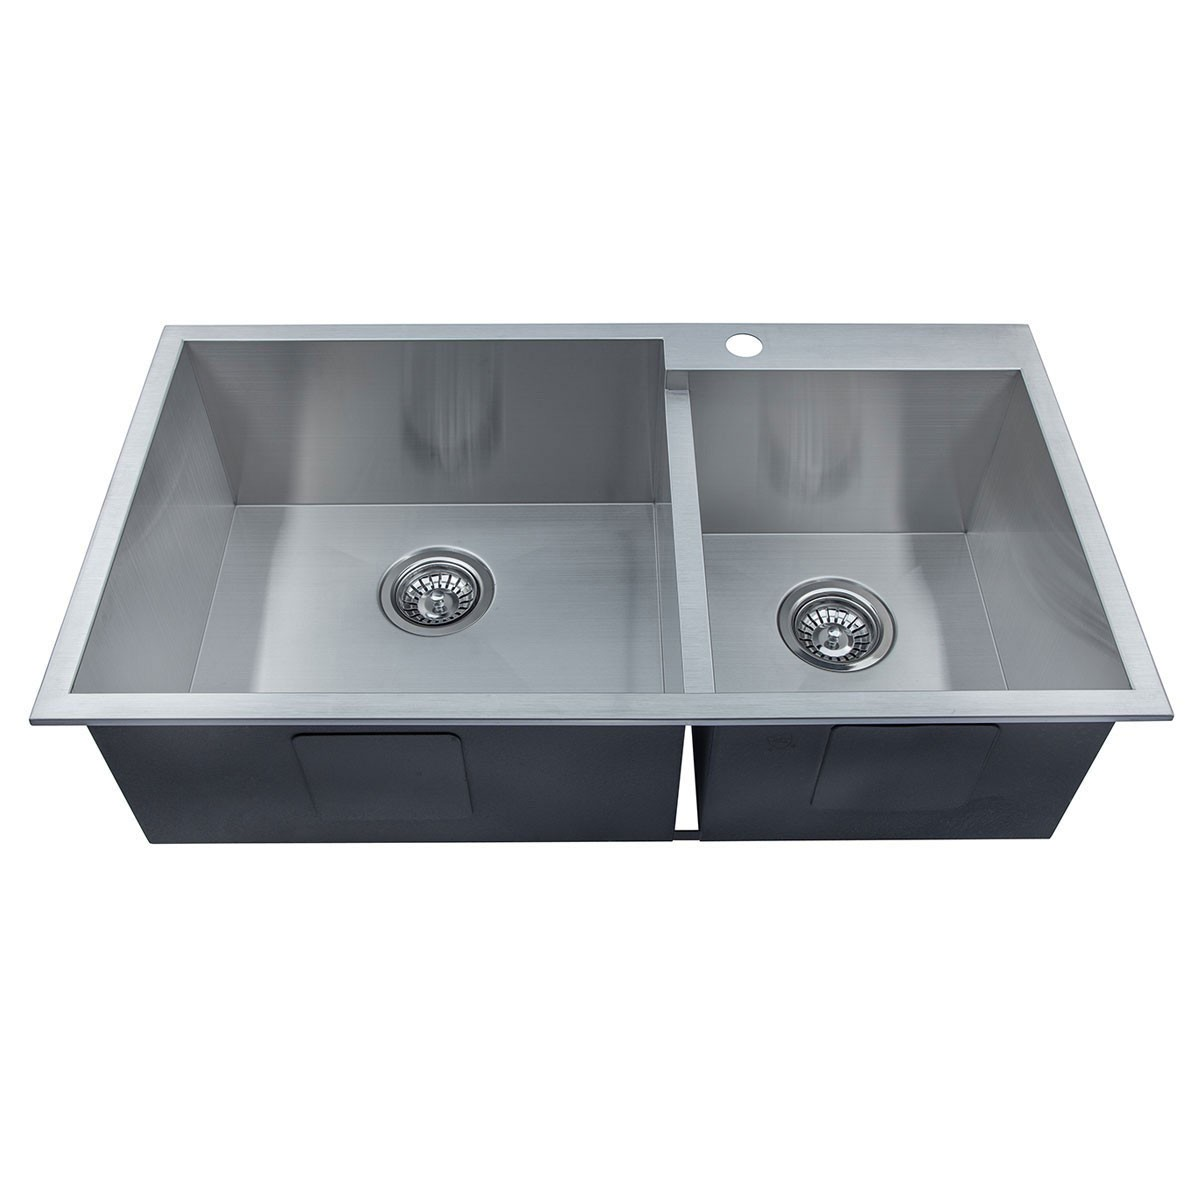 33 x 18 In. Stainless Steel Double Bowls Handmade Kitchen Sink (DG3318-R0)